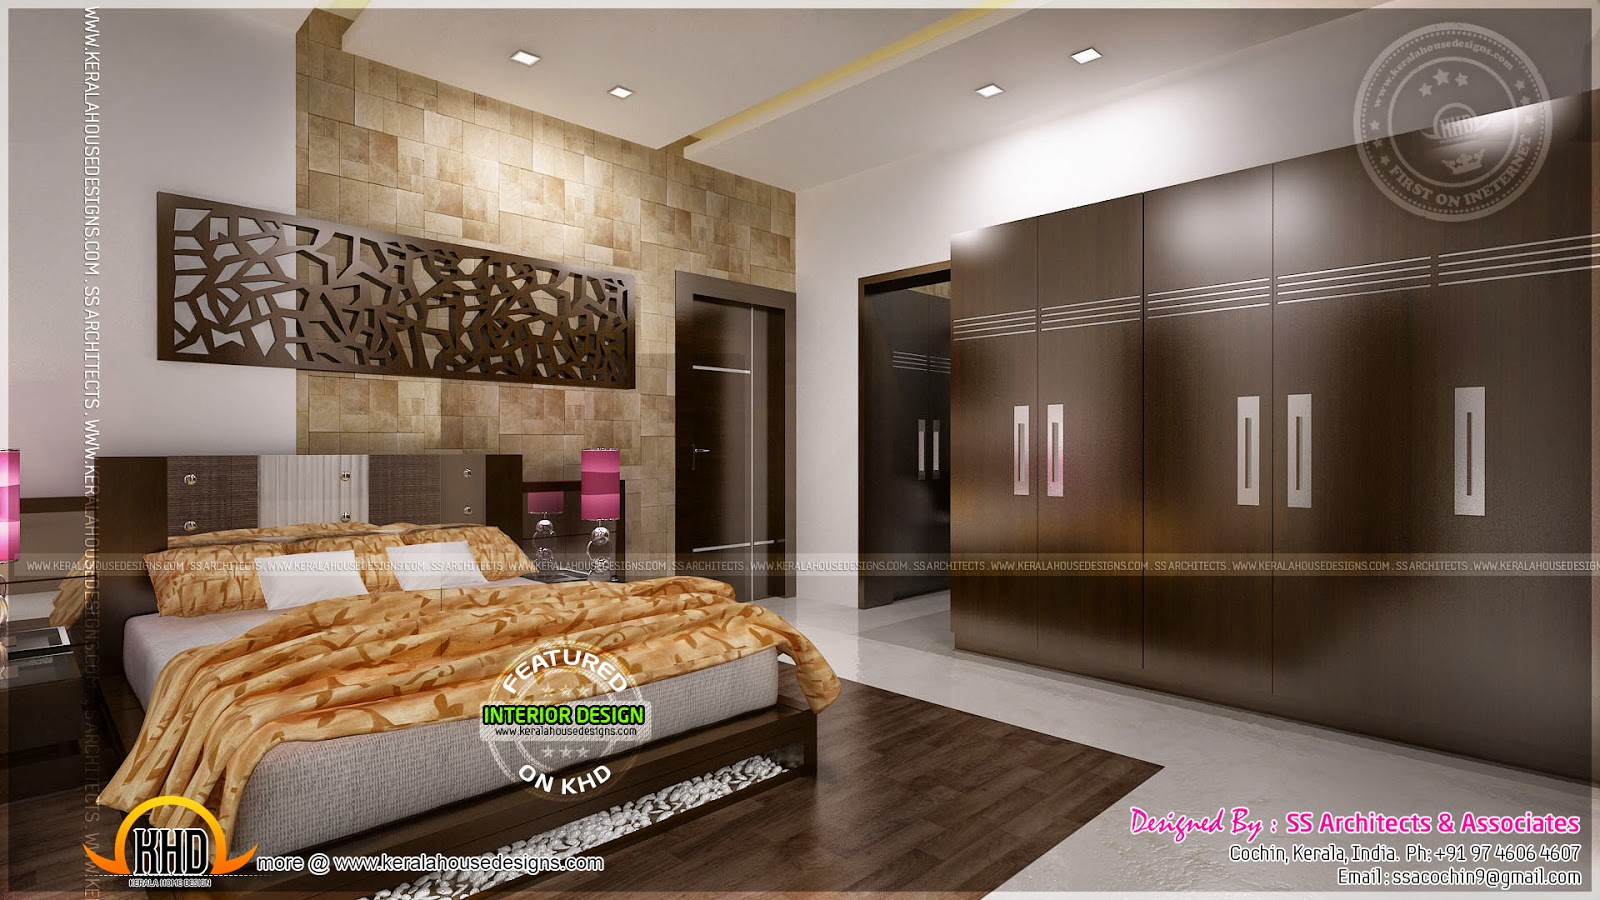 Awesome master bedroom interior kerala home design and for Bed room interior design images